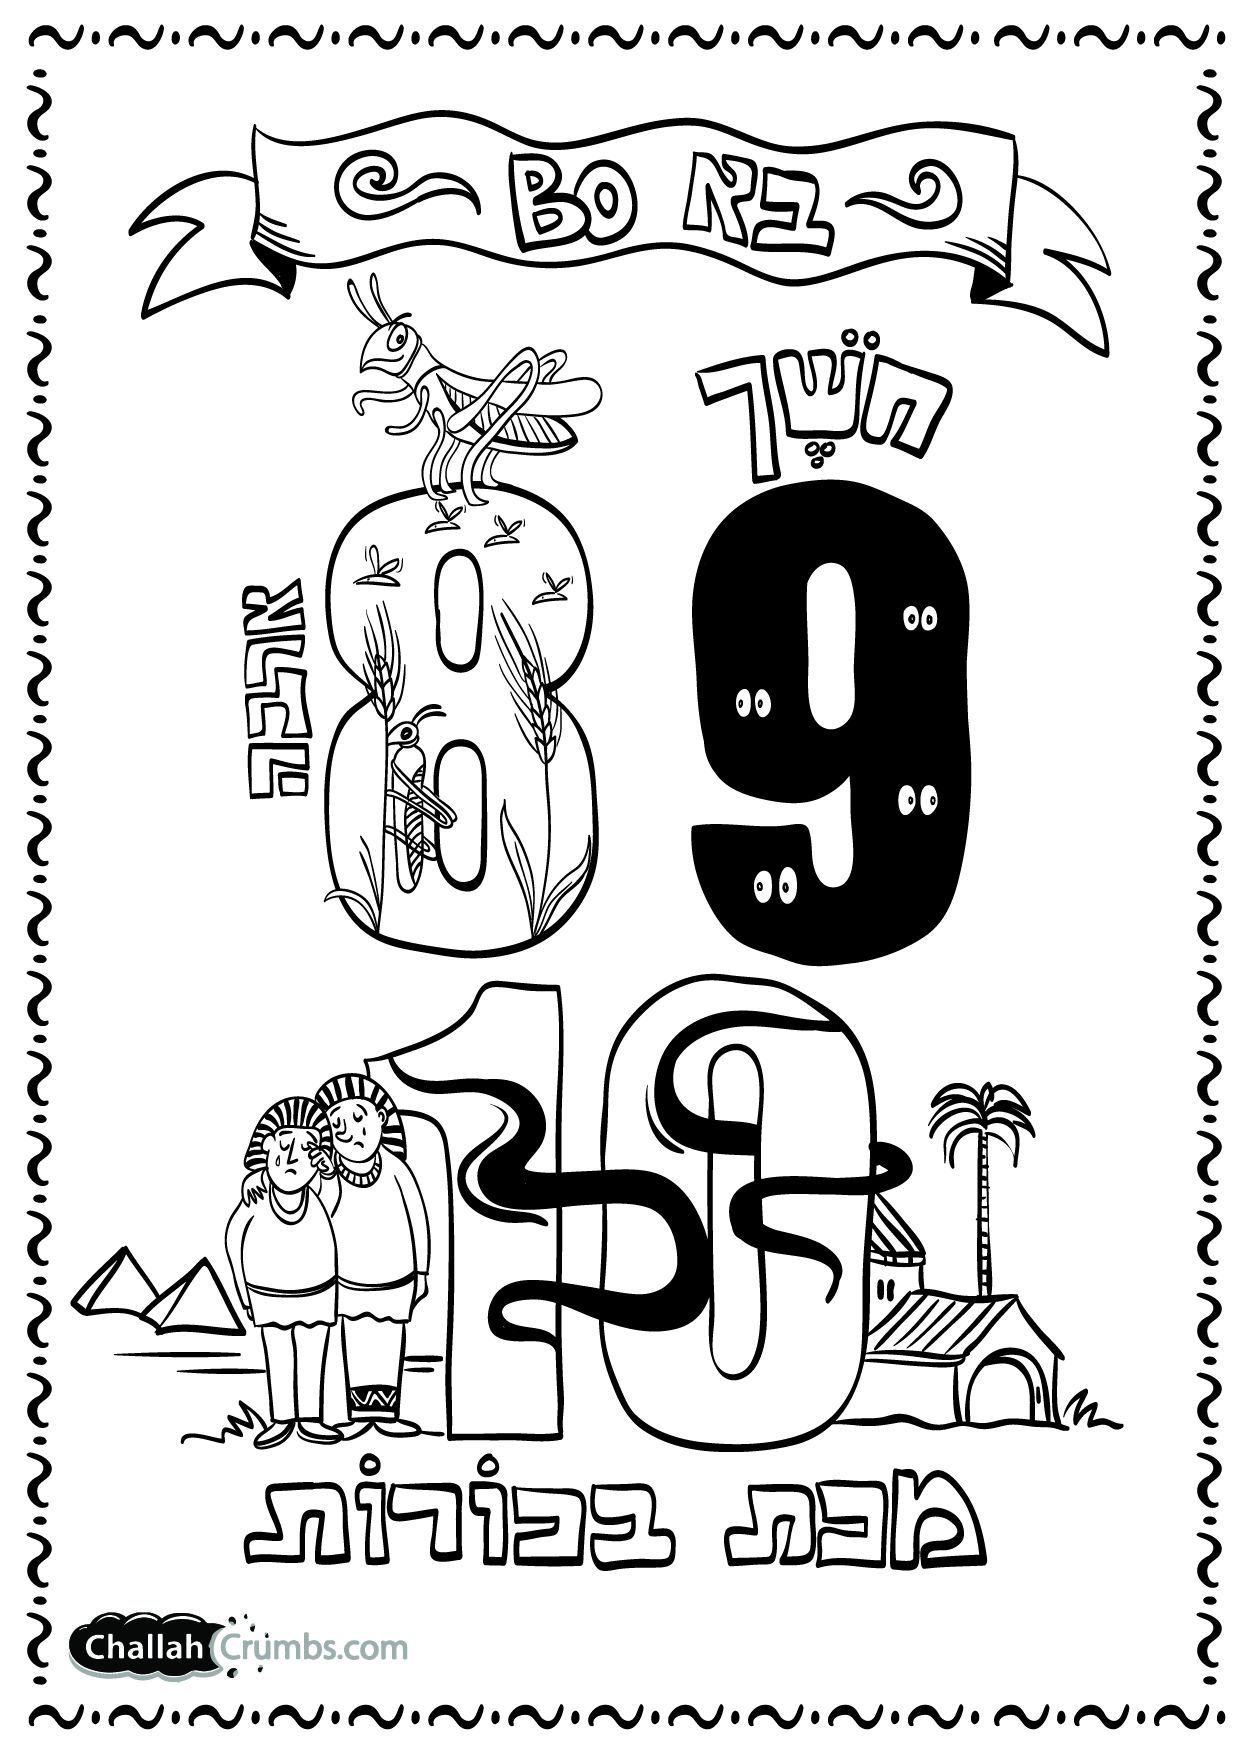 Parshat Bo Coloring Page Click On Page To Print Challah Crumbs